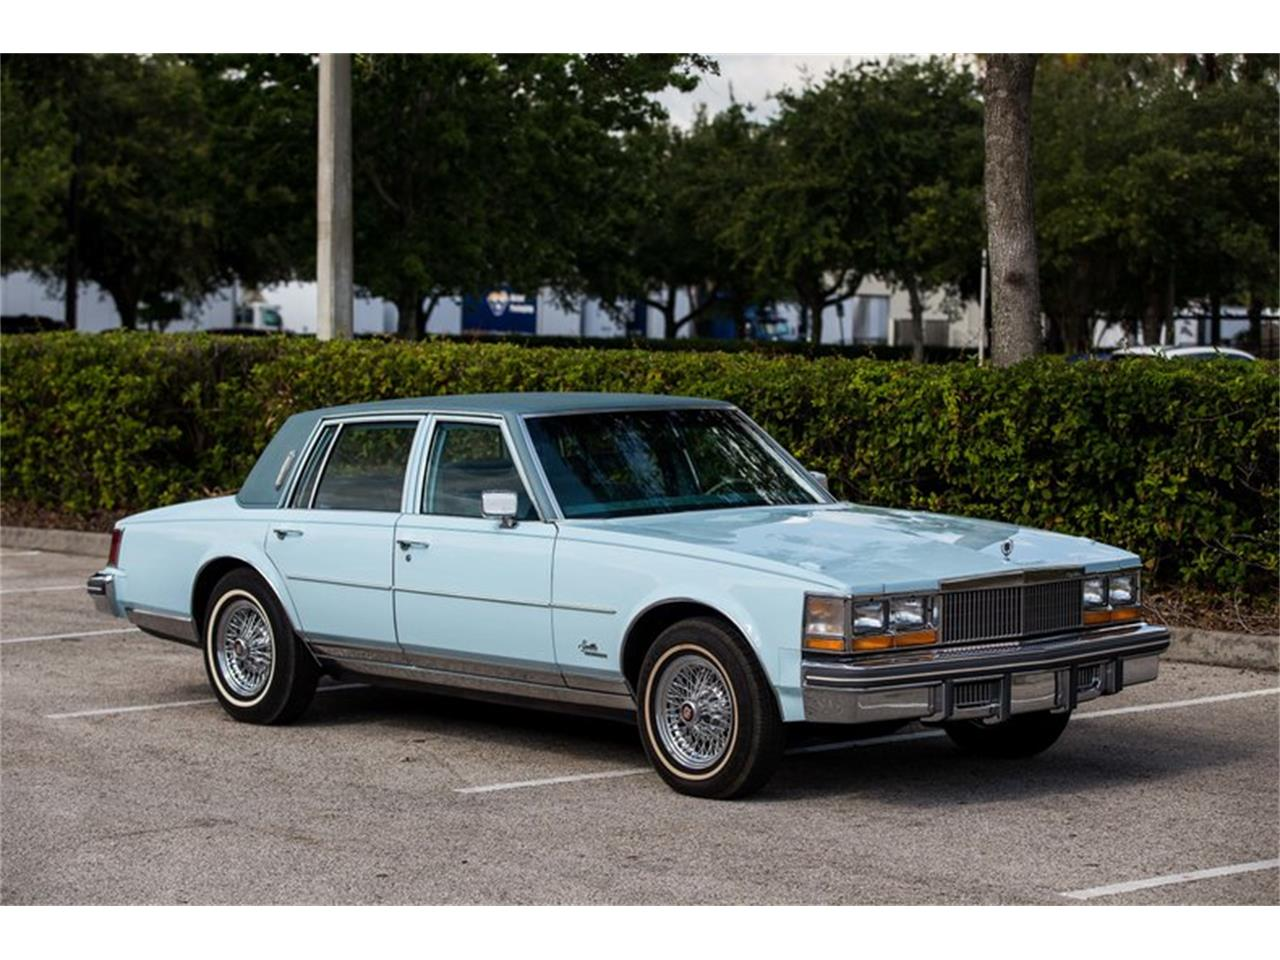 1978 Cadillac Seville for sale in Orlando, FL ...